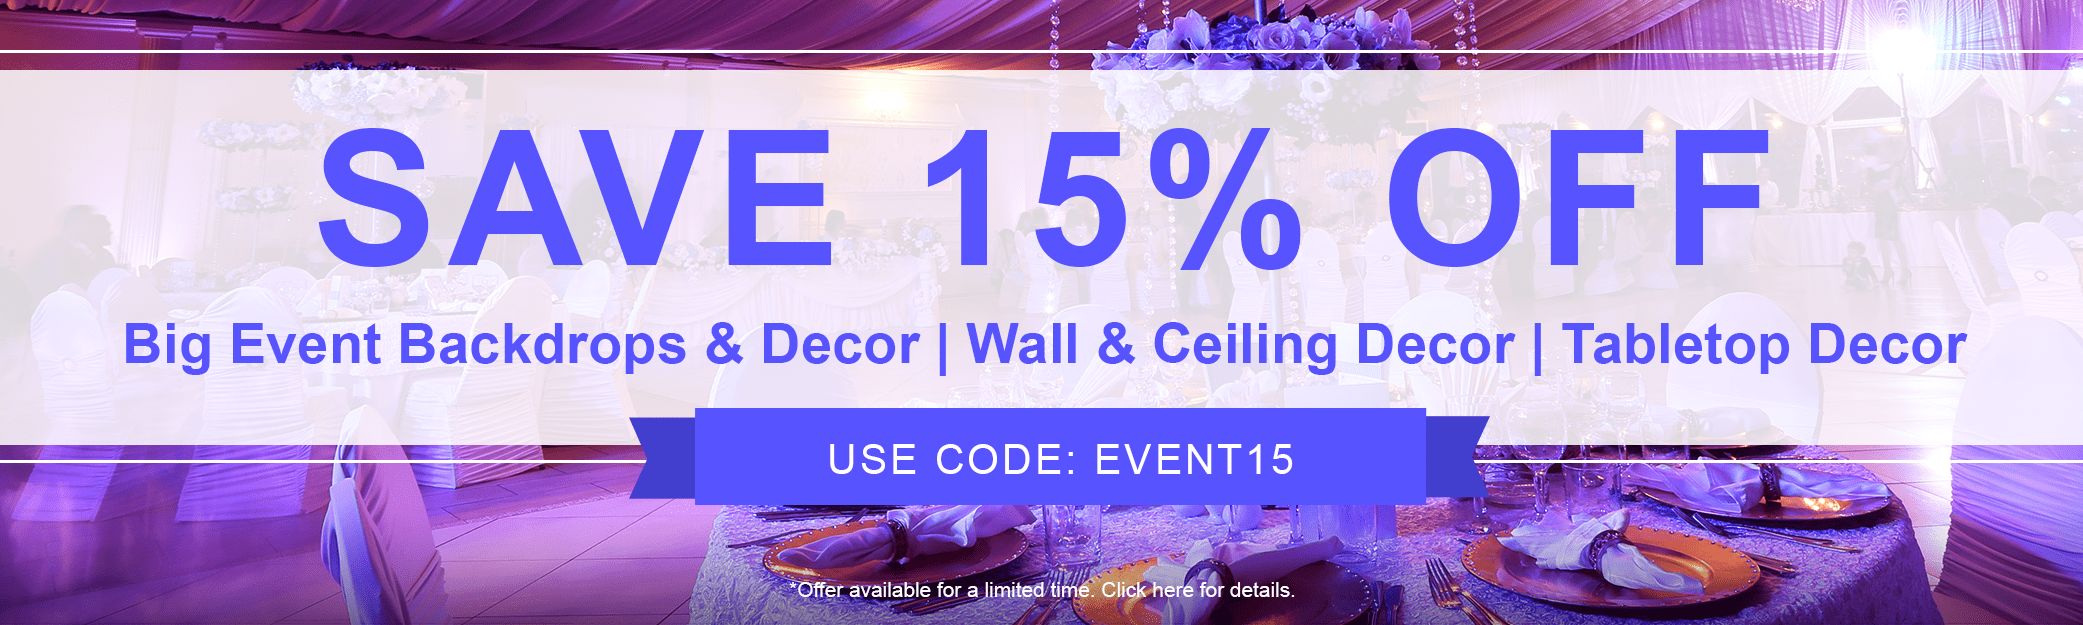 15% Off Big Event Backdrops & Decor, Wall & Celing Decor, Table Top Decor